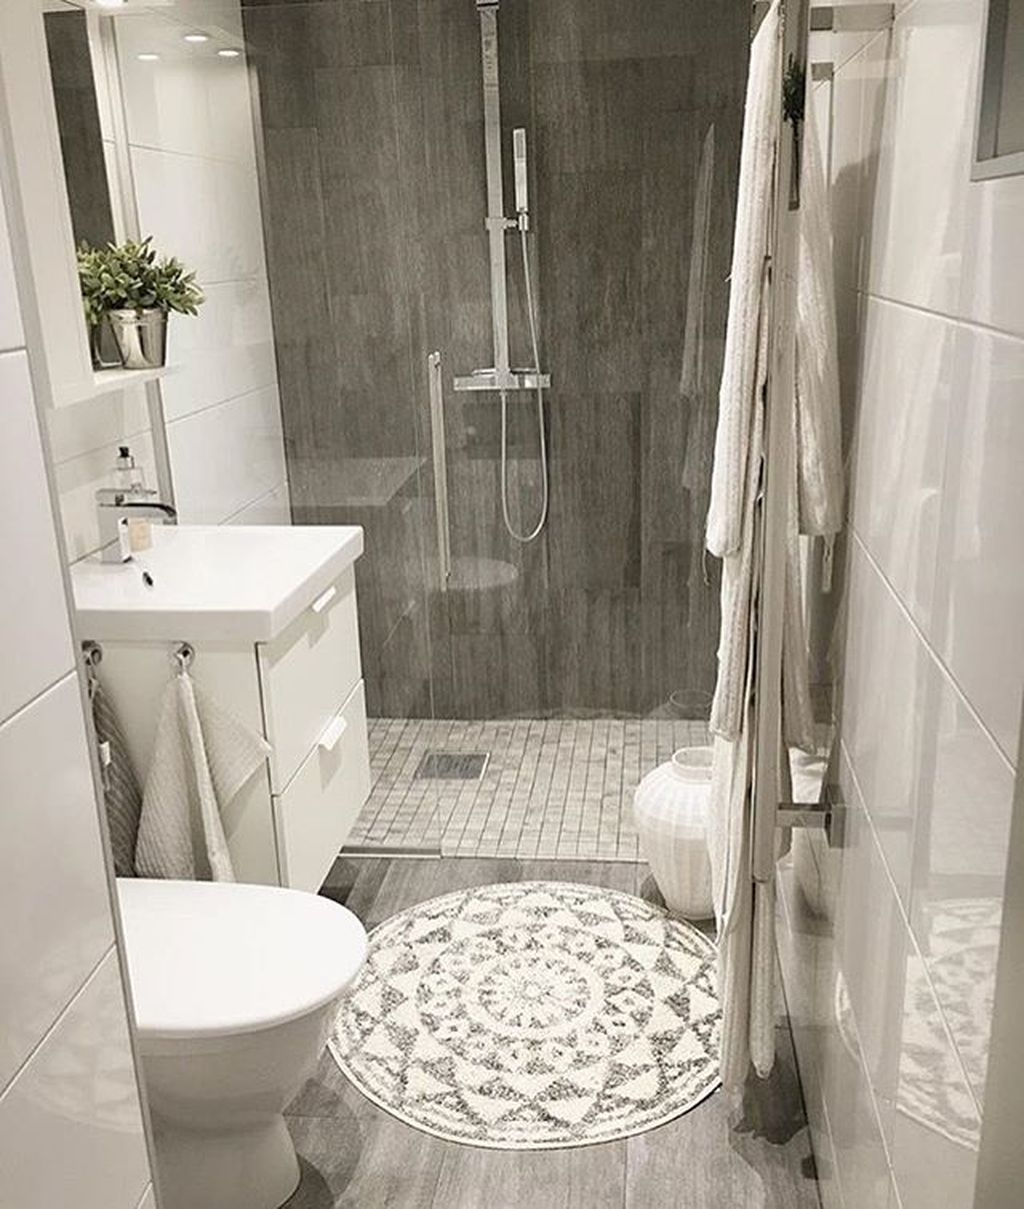 39 cool and stylish small bathroom design ideas homedecorish Small bathroom design ideas 2017